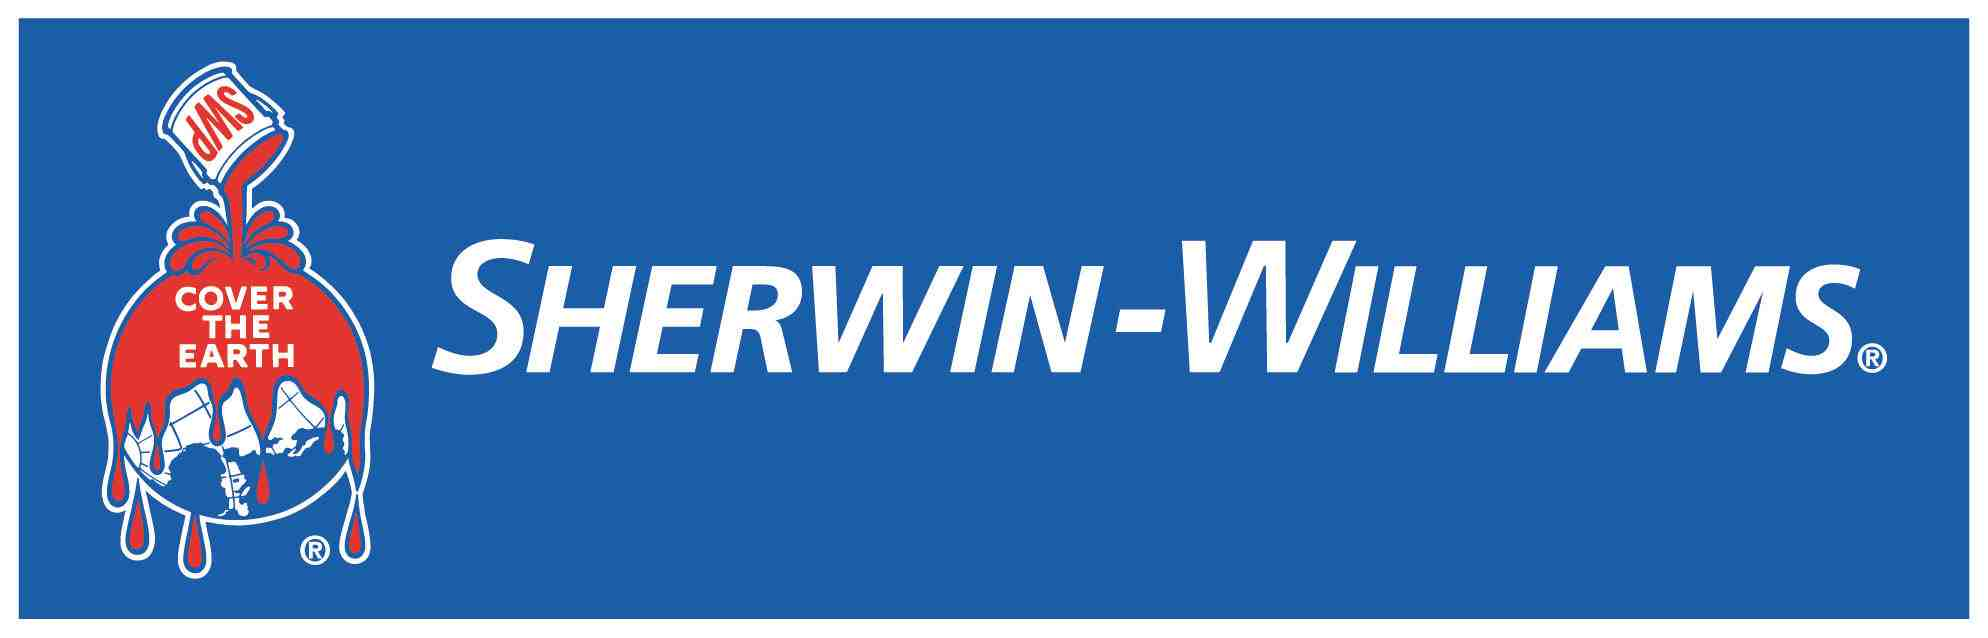 sherwin_williams_logo.jpg